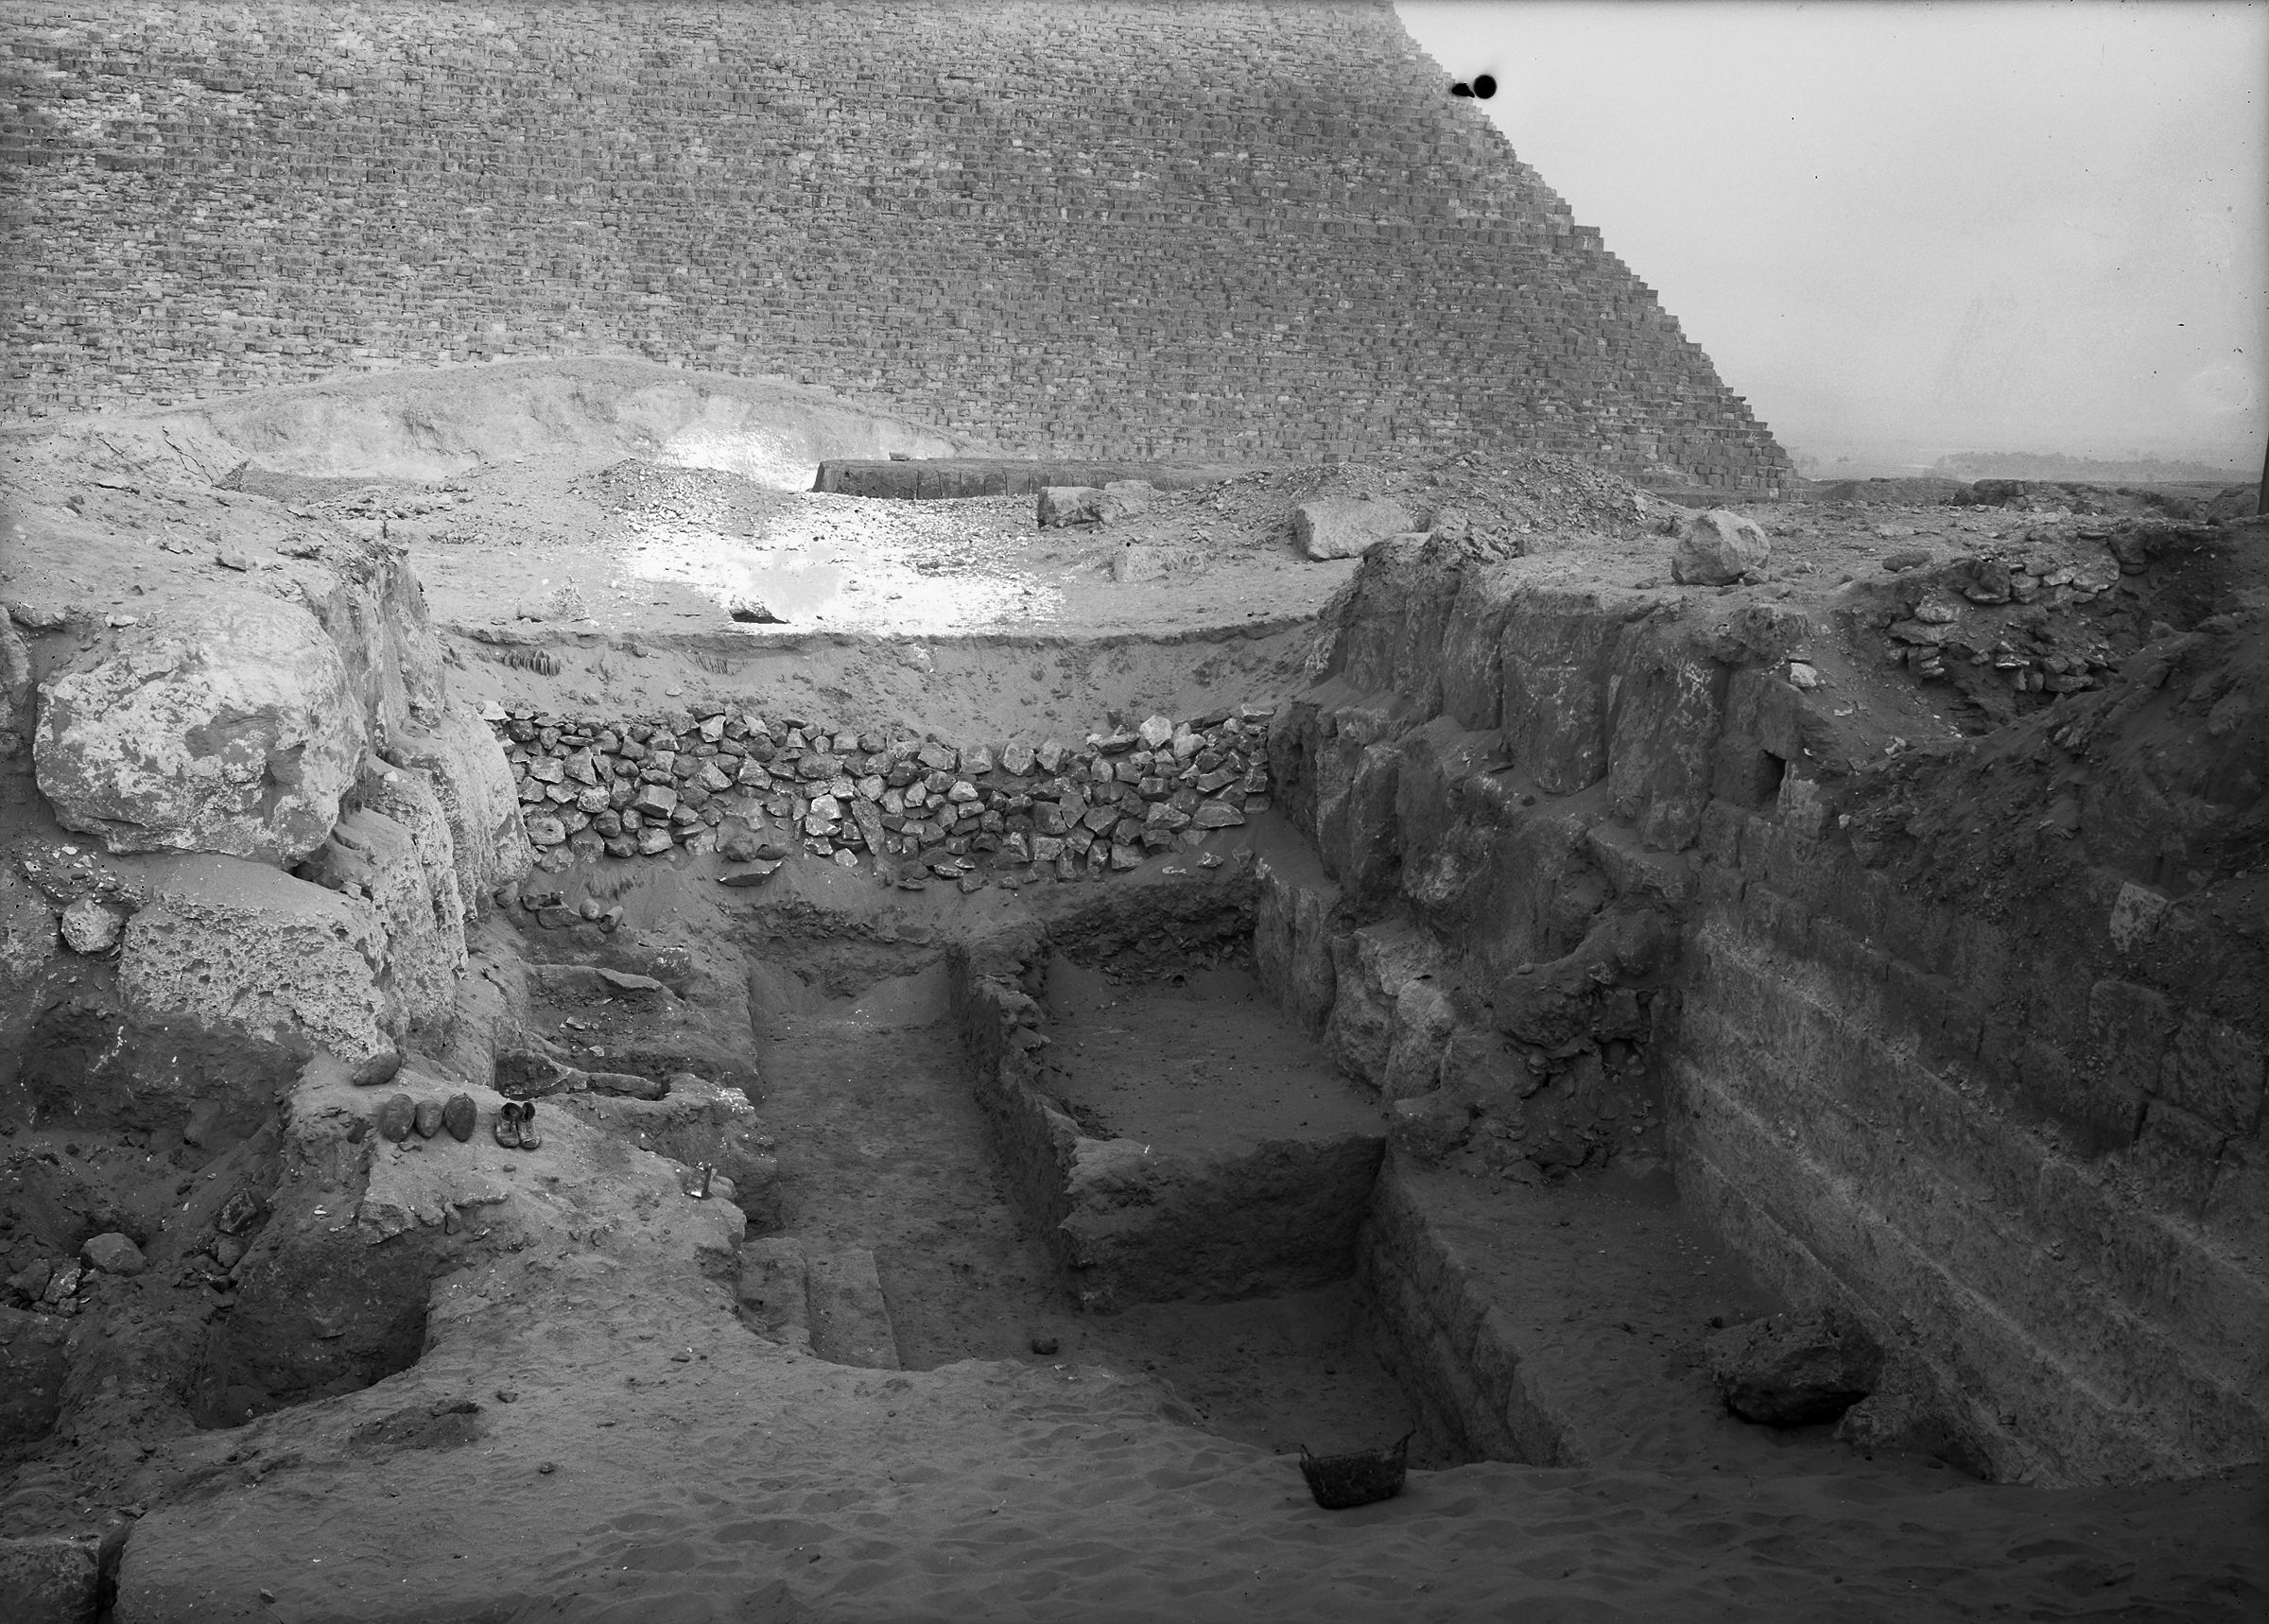 Western Cemetery: Site: Giza; View: G 4730, G 4740, G 4731, G 4732